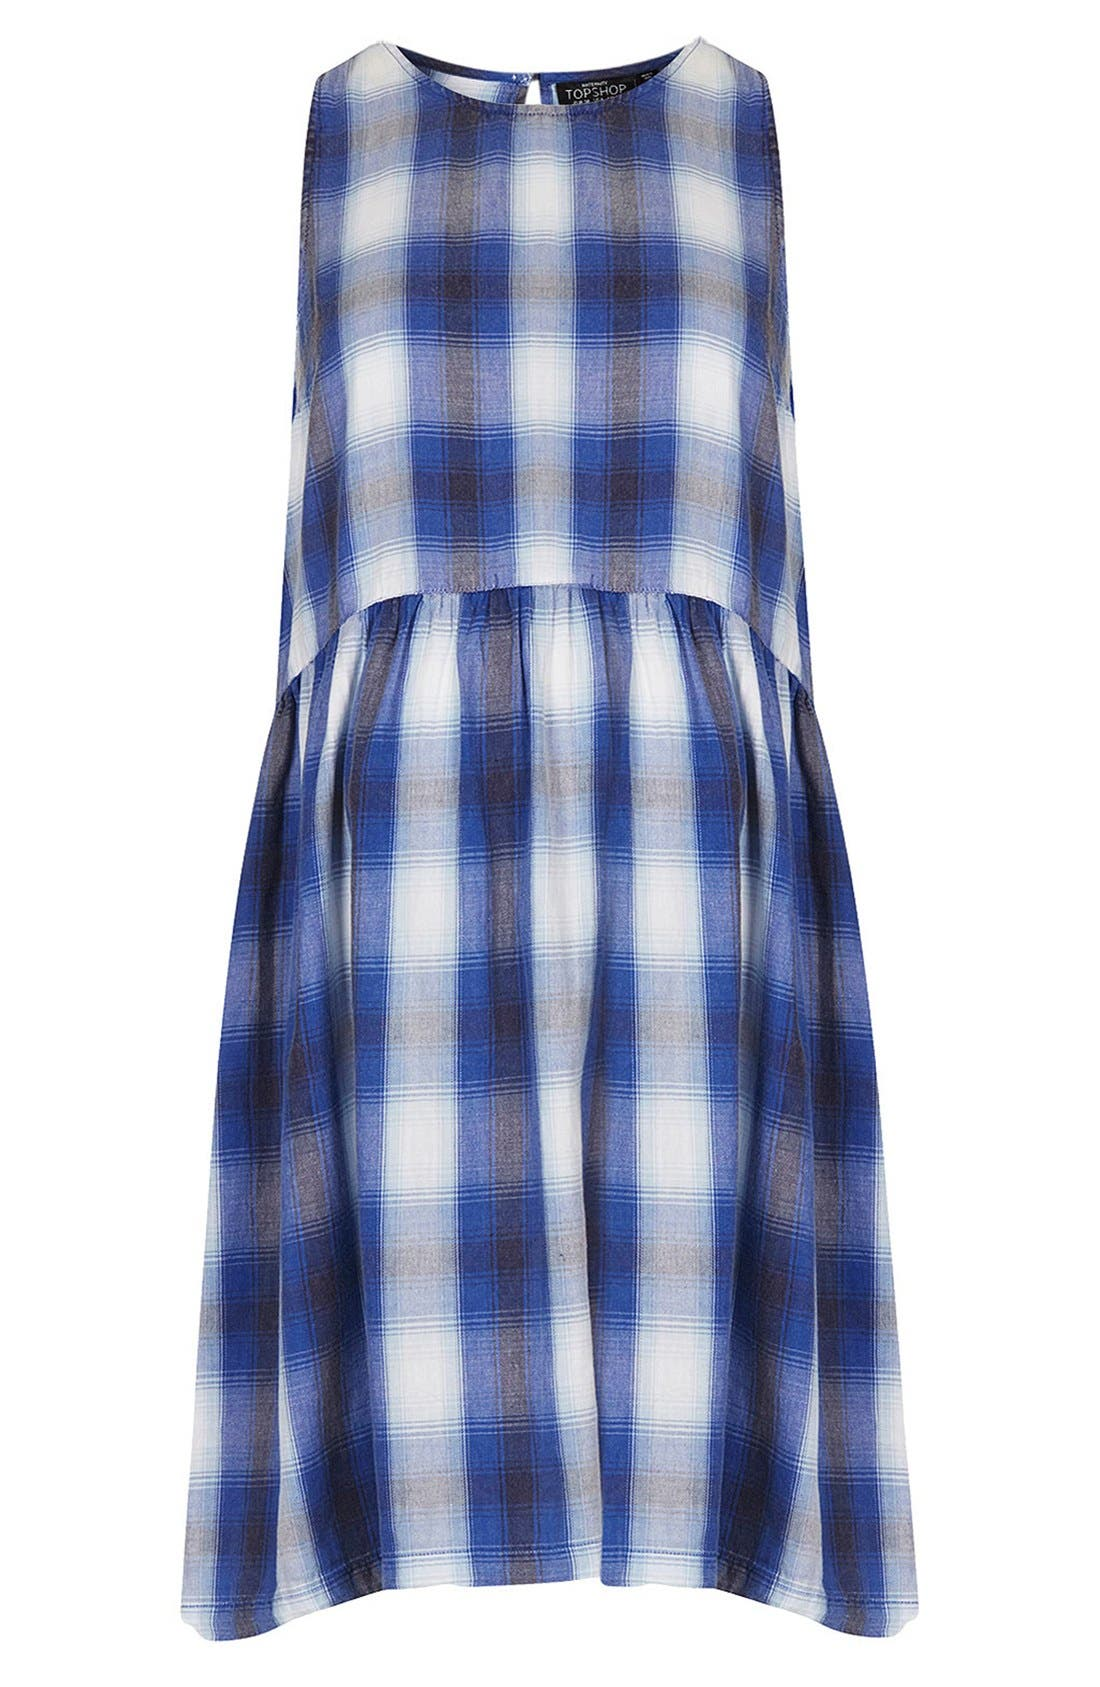 Alternate Image 1 Selected - Topshop Check Maternity Dress